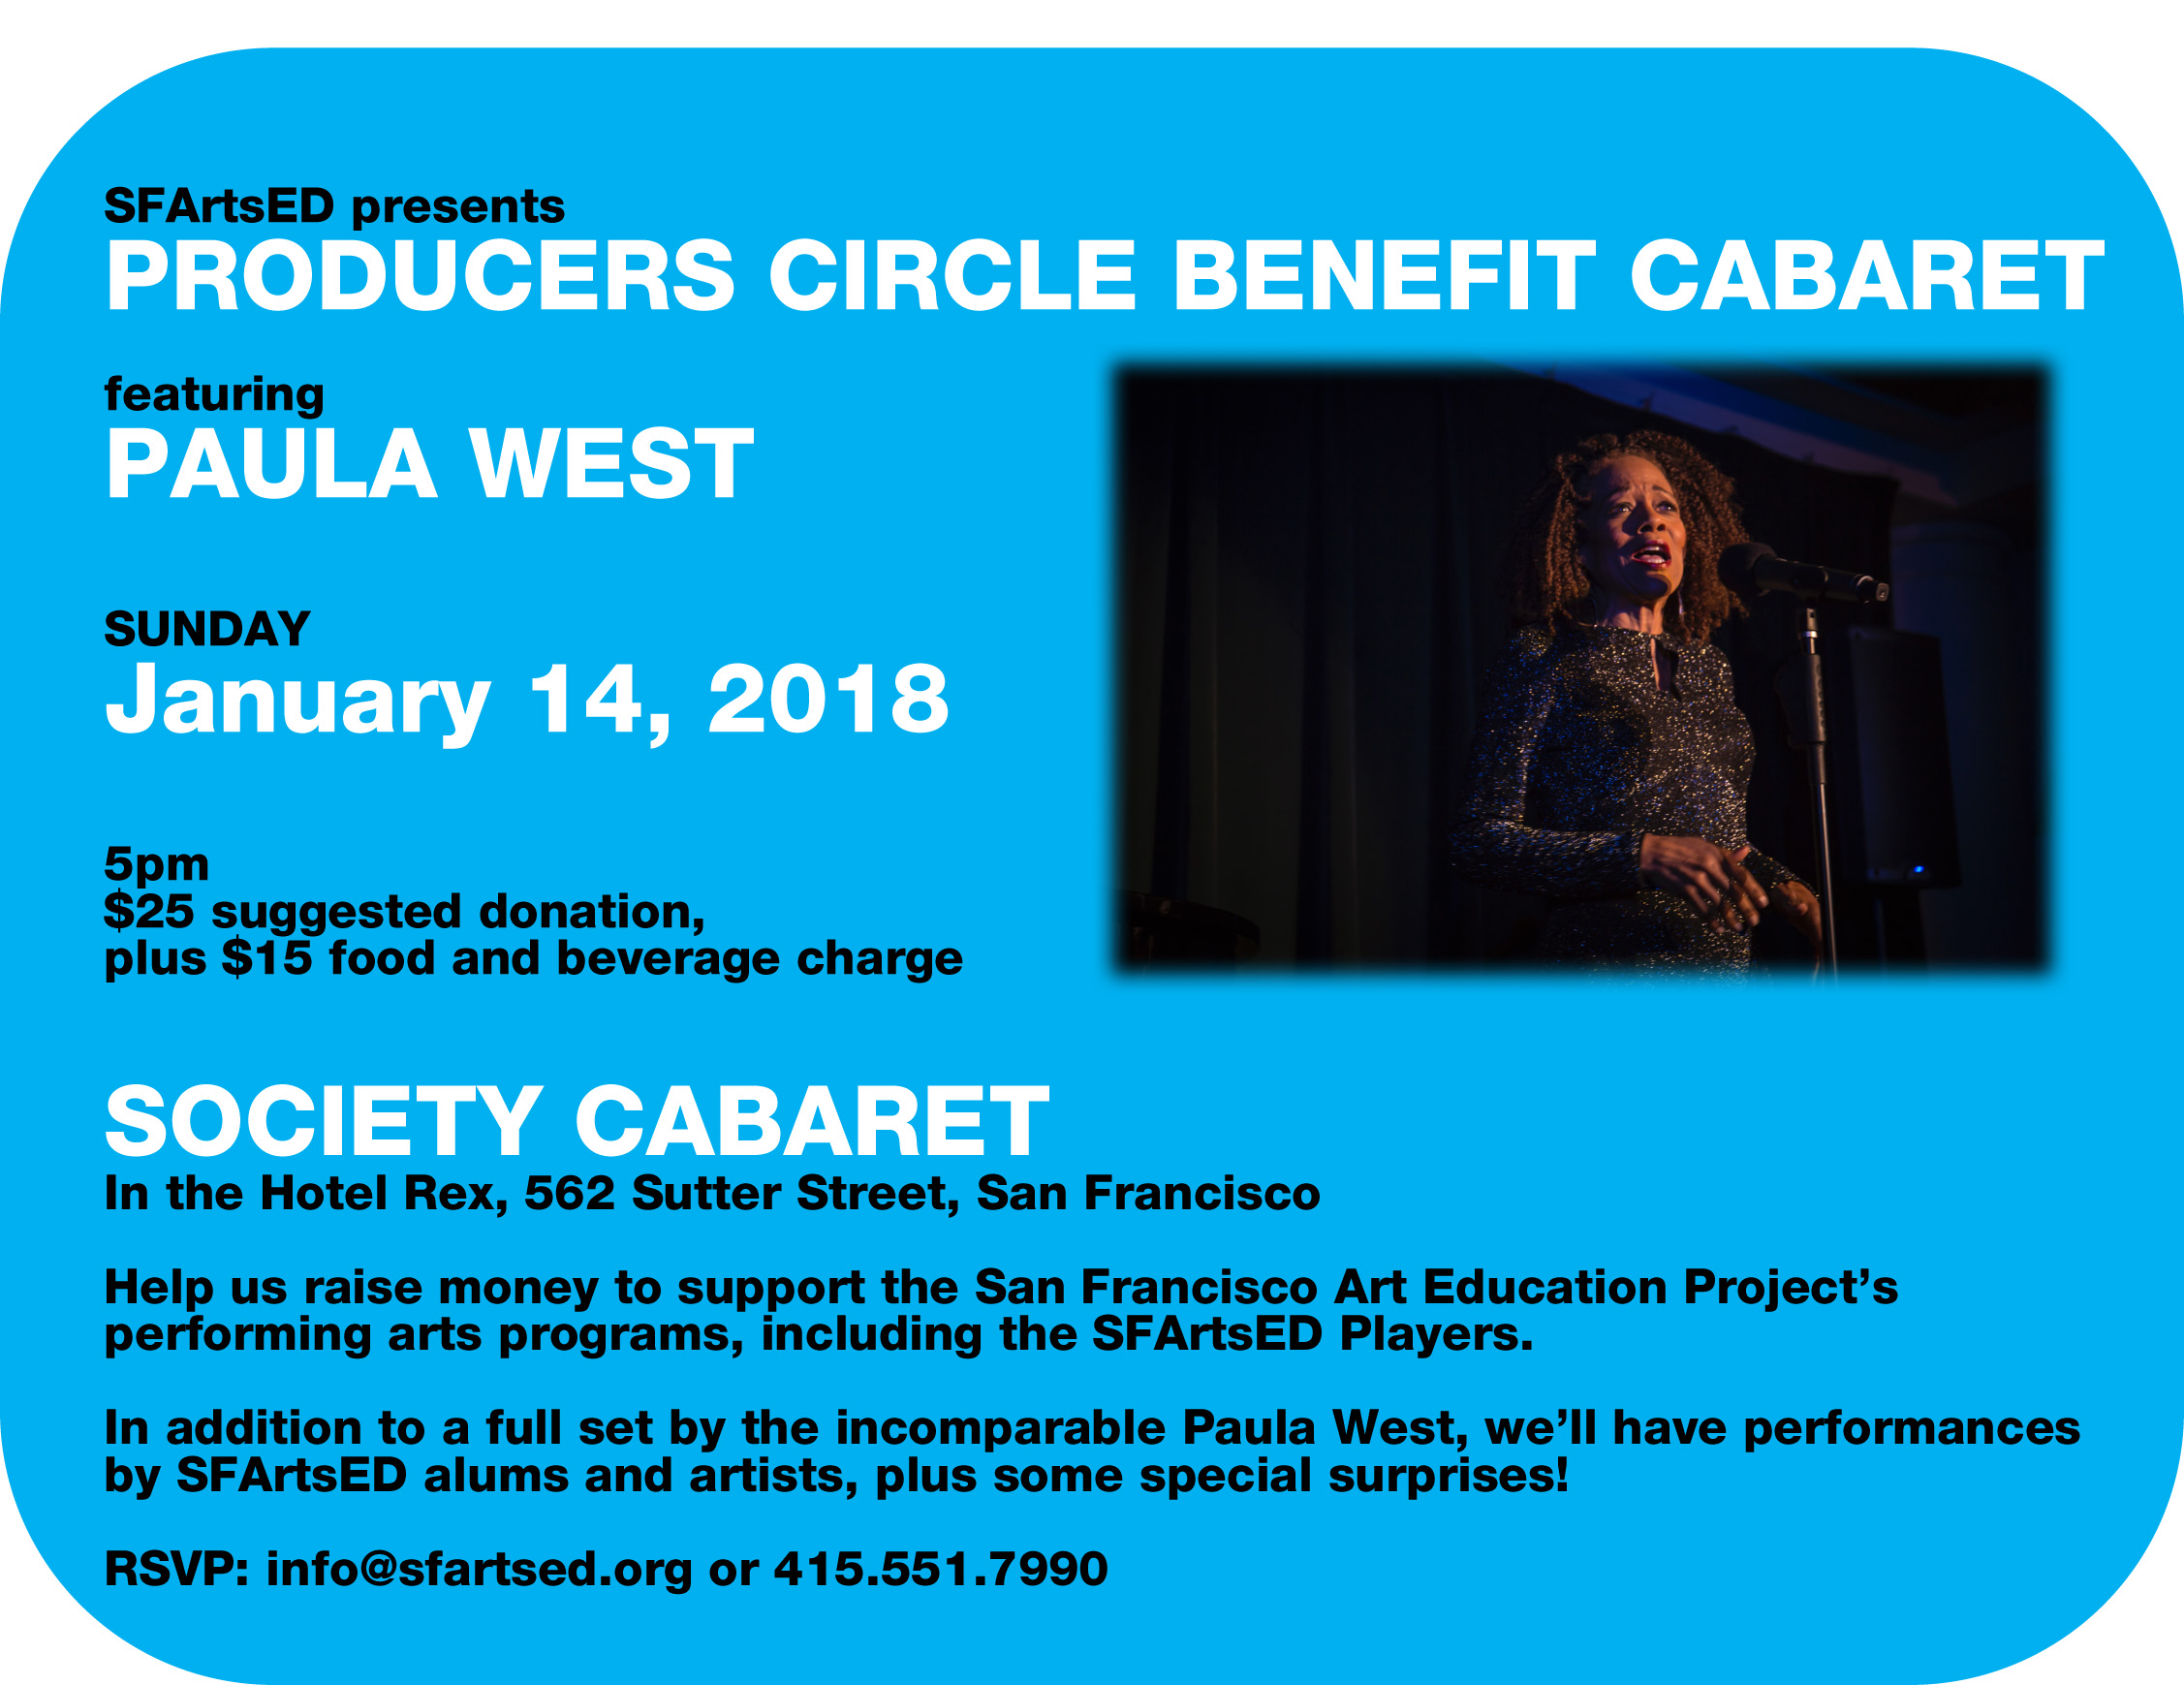 SOLD OUT! Producers Circle Benefit Cabaret featuring Paula West